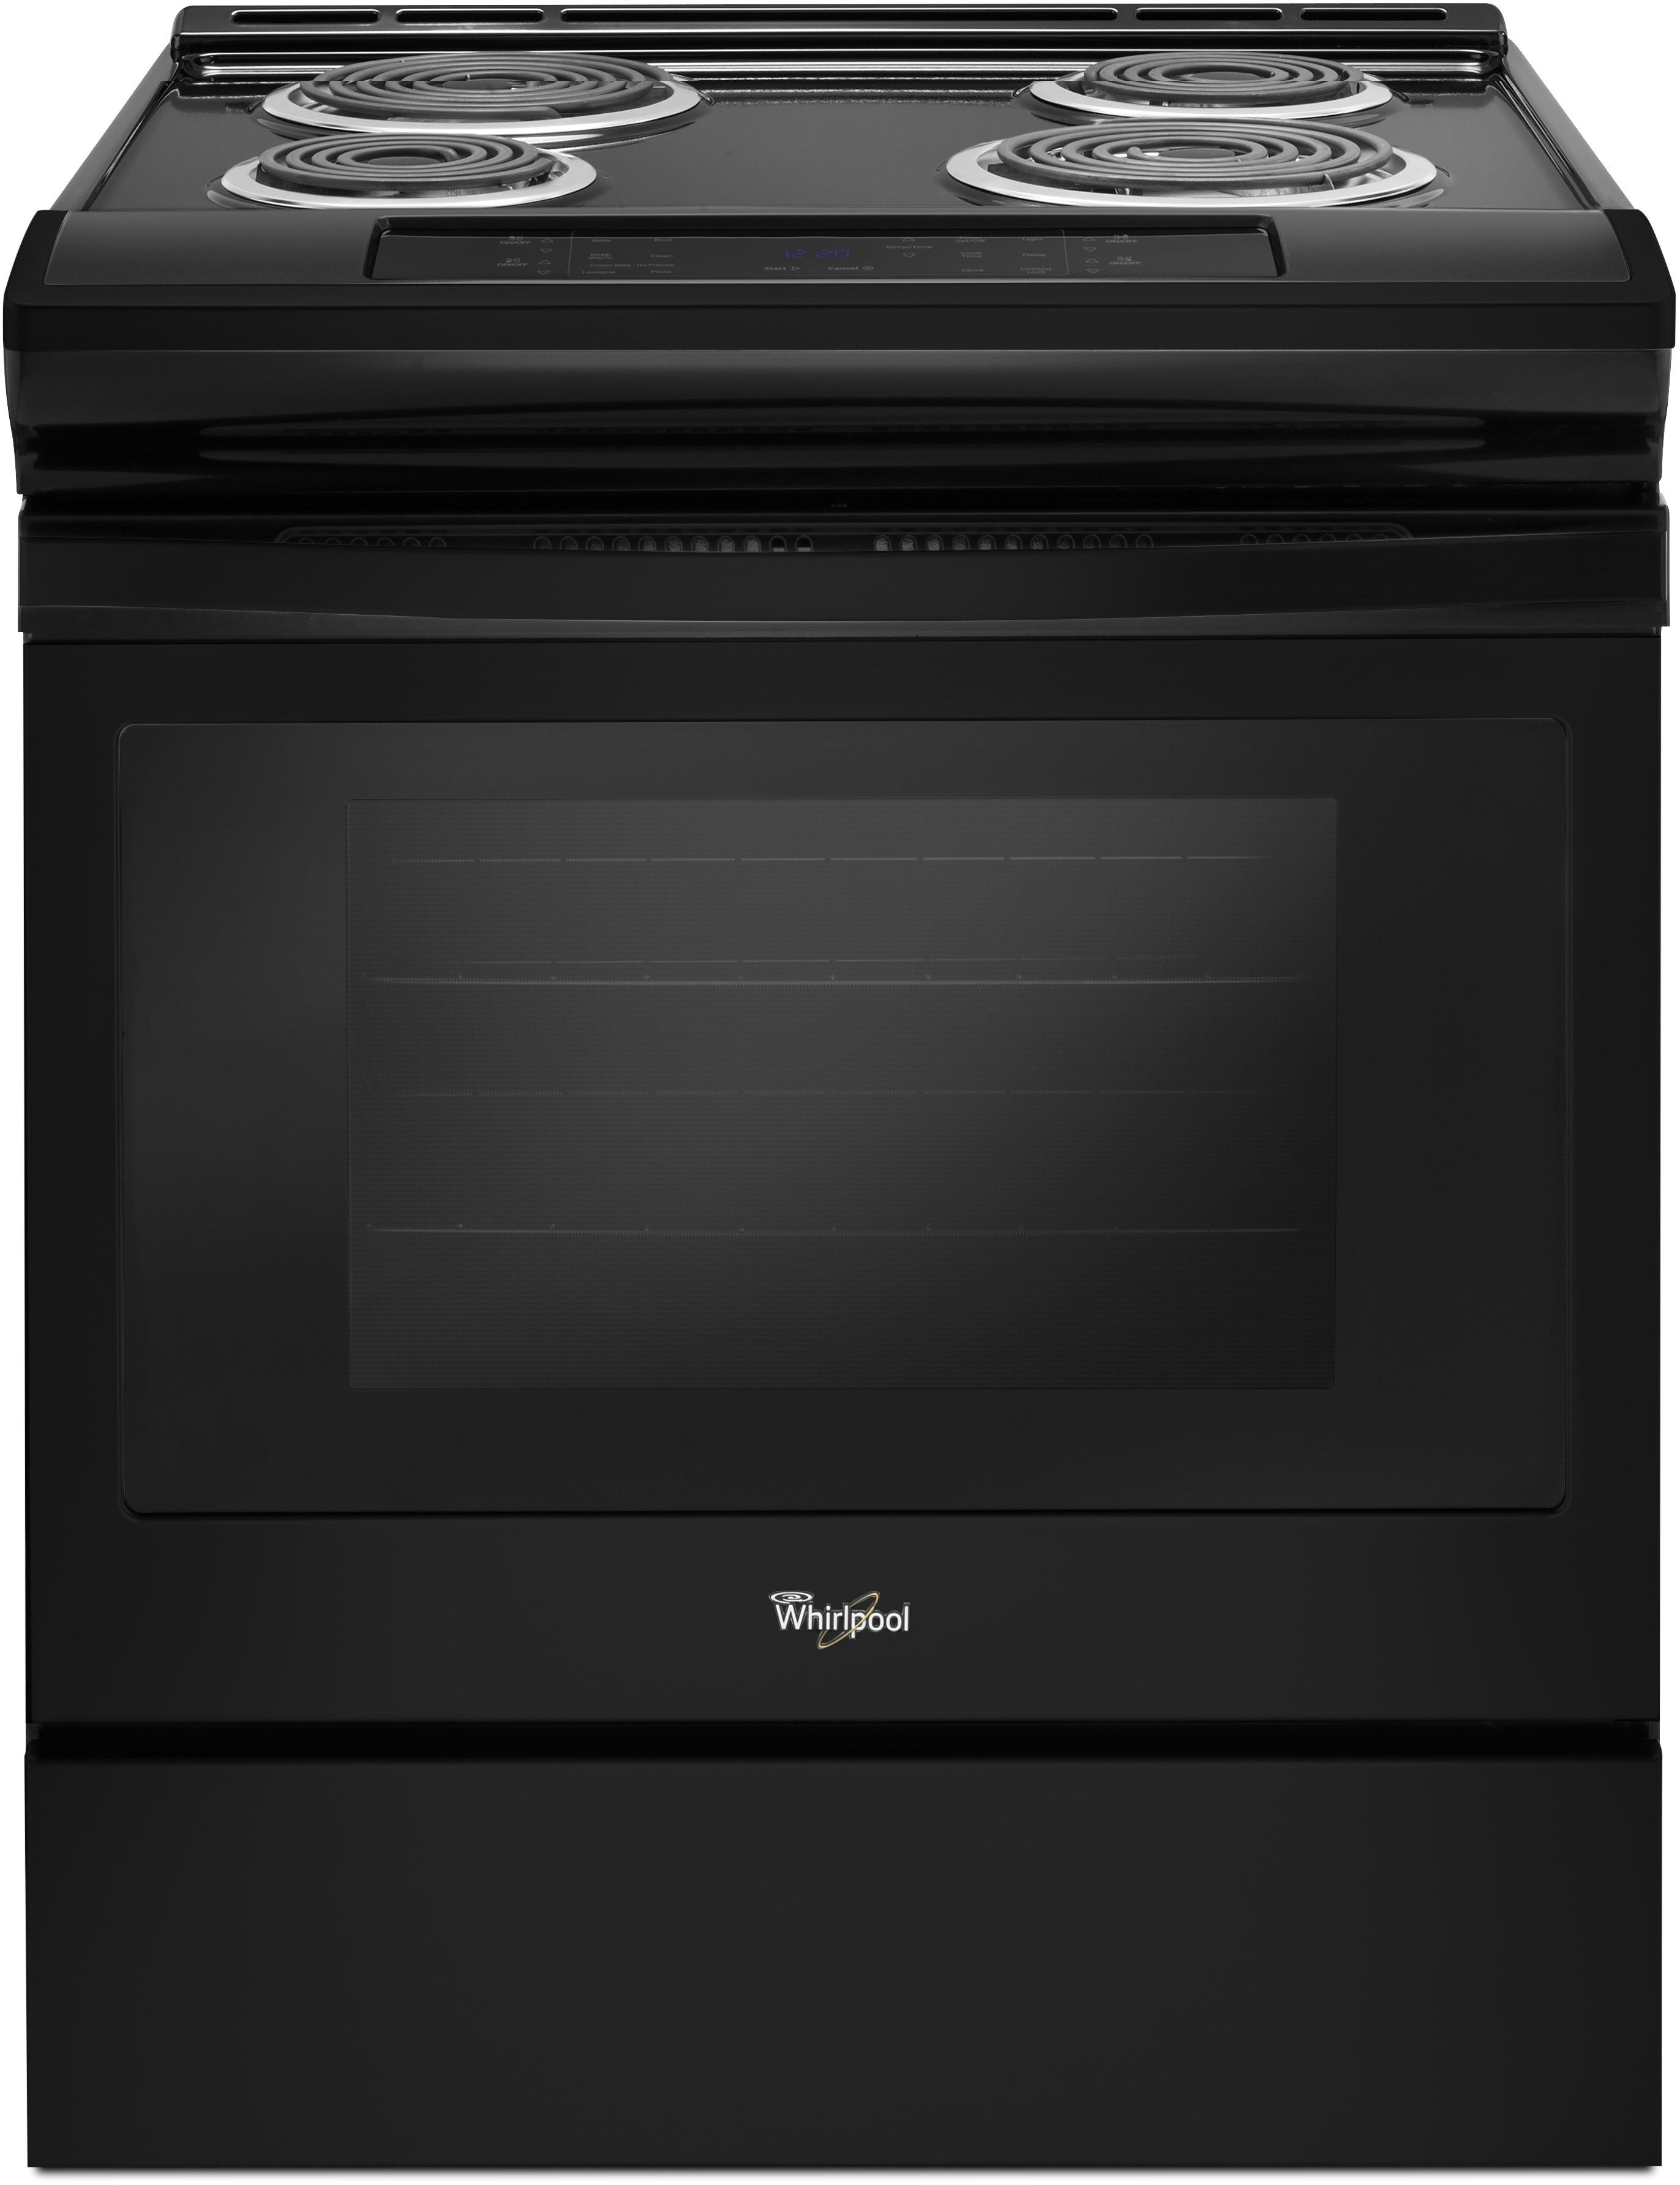 Whirlpool Wec310s0fb 30 Inch Slide In Electric Range With